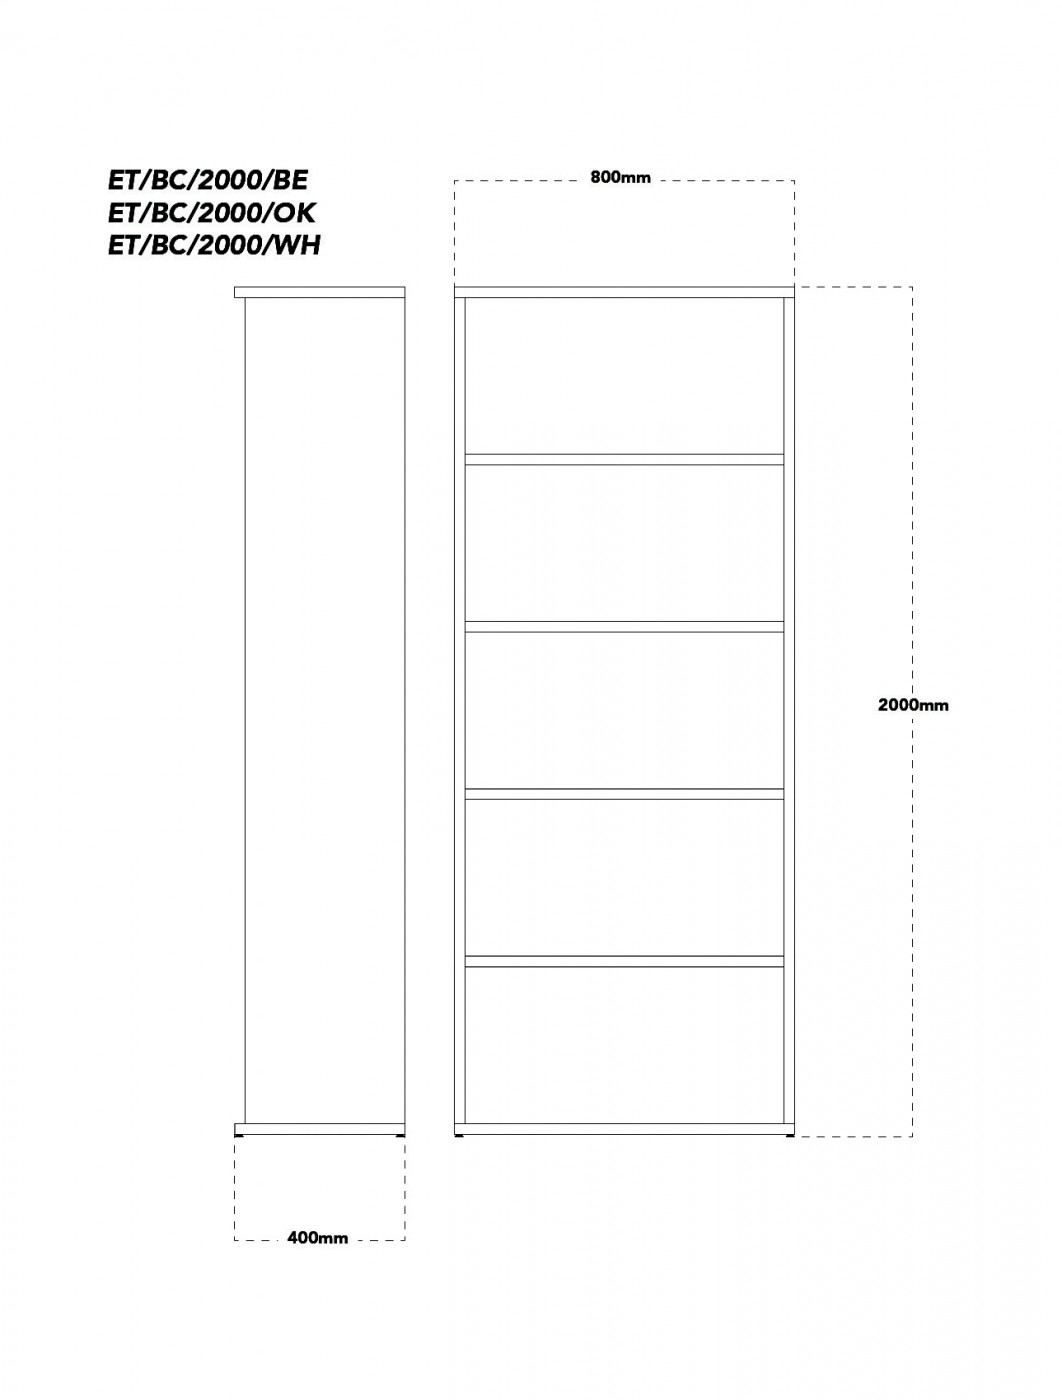 White Office Bookcase 2000mm High Aspire Bookcase ET/BC/2000/WH